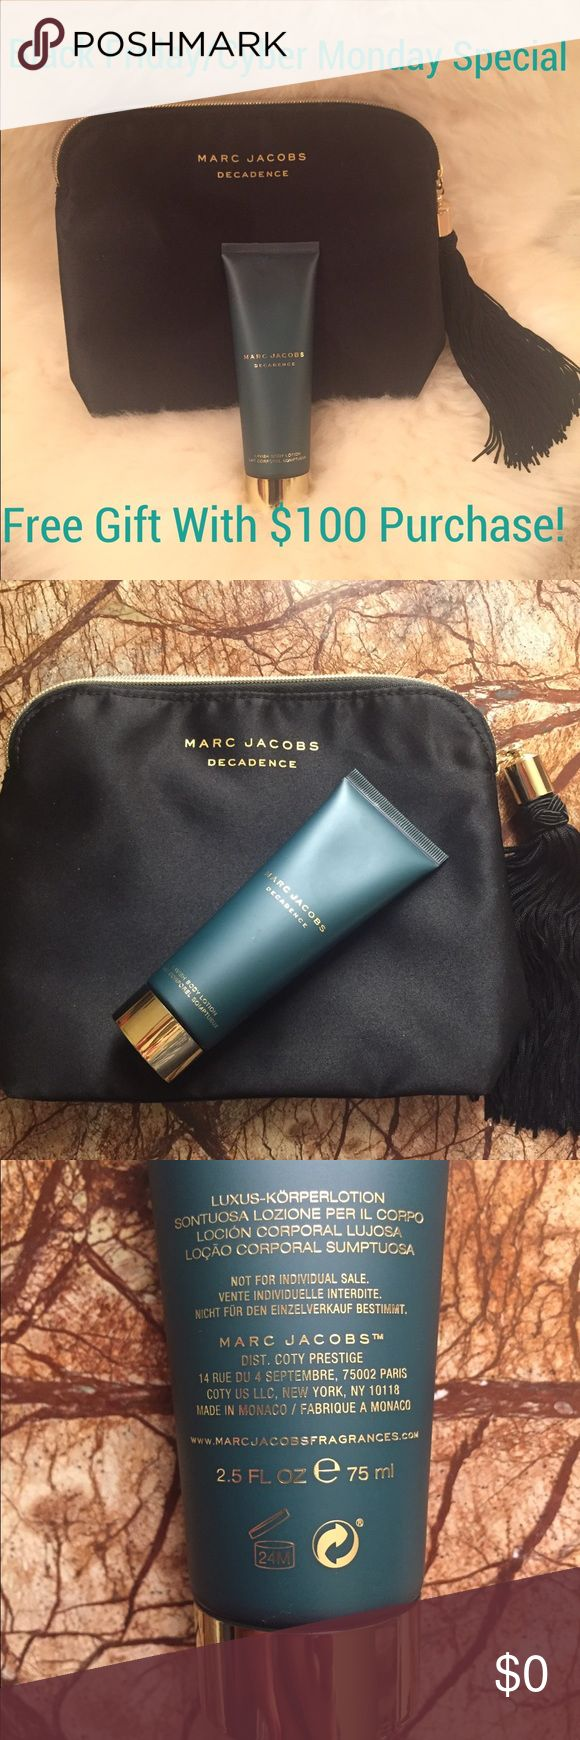 """Marc Jacobs Decadence Make Up Case And Body Lotion Black Marc Jacobs Decadence make up case with gold tone top zip closure with large tassel at zipper pul. Includes Marc Jacobs Decadence lotion - 2.5 oz that has been used once but is over 75% full. Make up case has never been used and is 100% Polyester in size 7""""x8"""". Marc Jacobs Bags"""